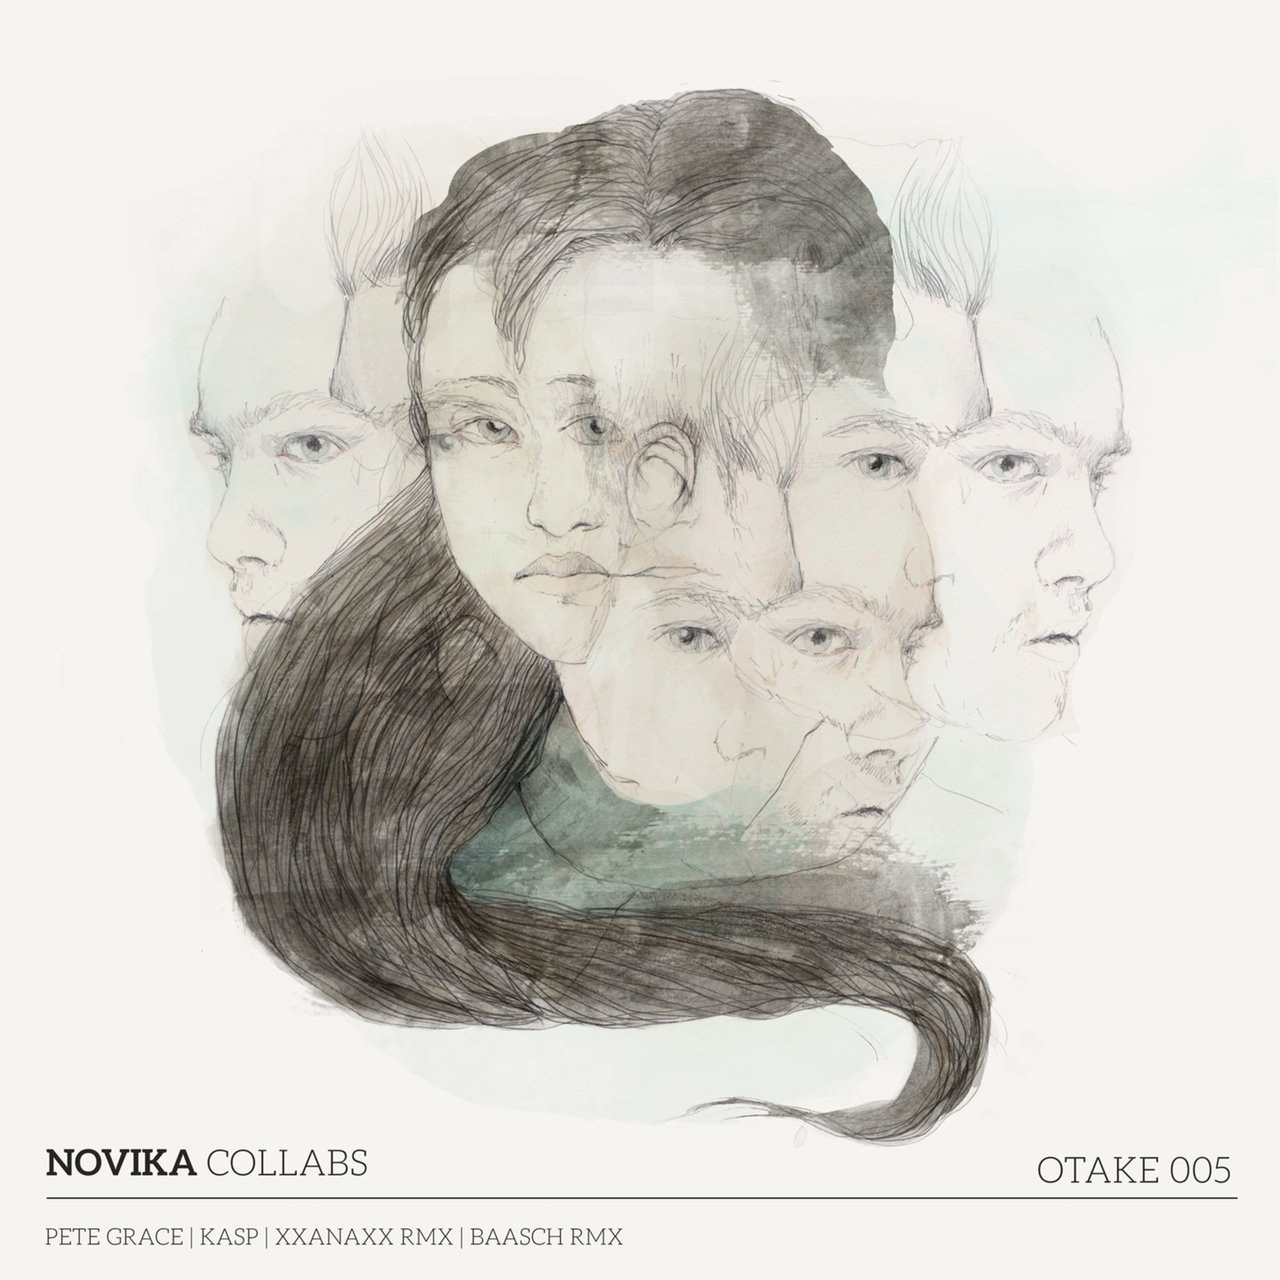 Novika Collabs